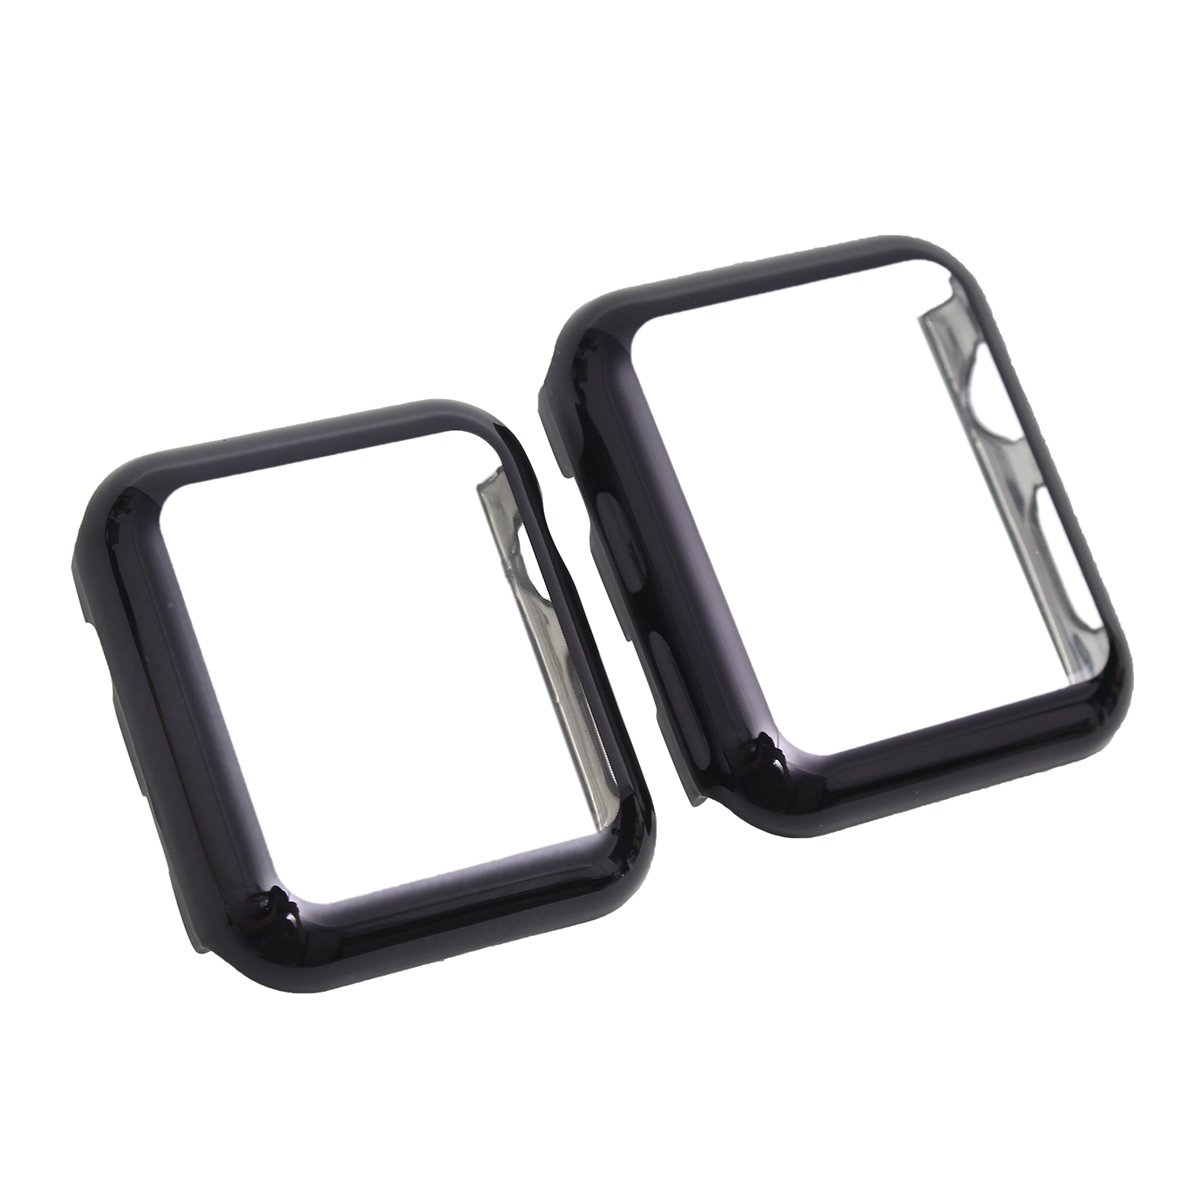 Black Plating PC Screen Protector Case for Apple Watch iWatch Series 2/1 38mm 42mm